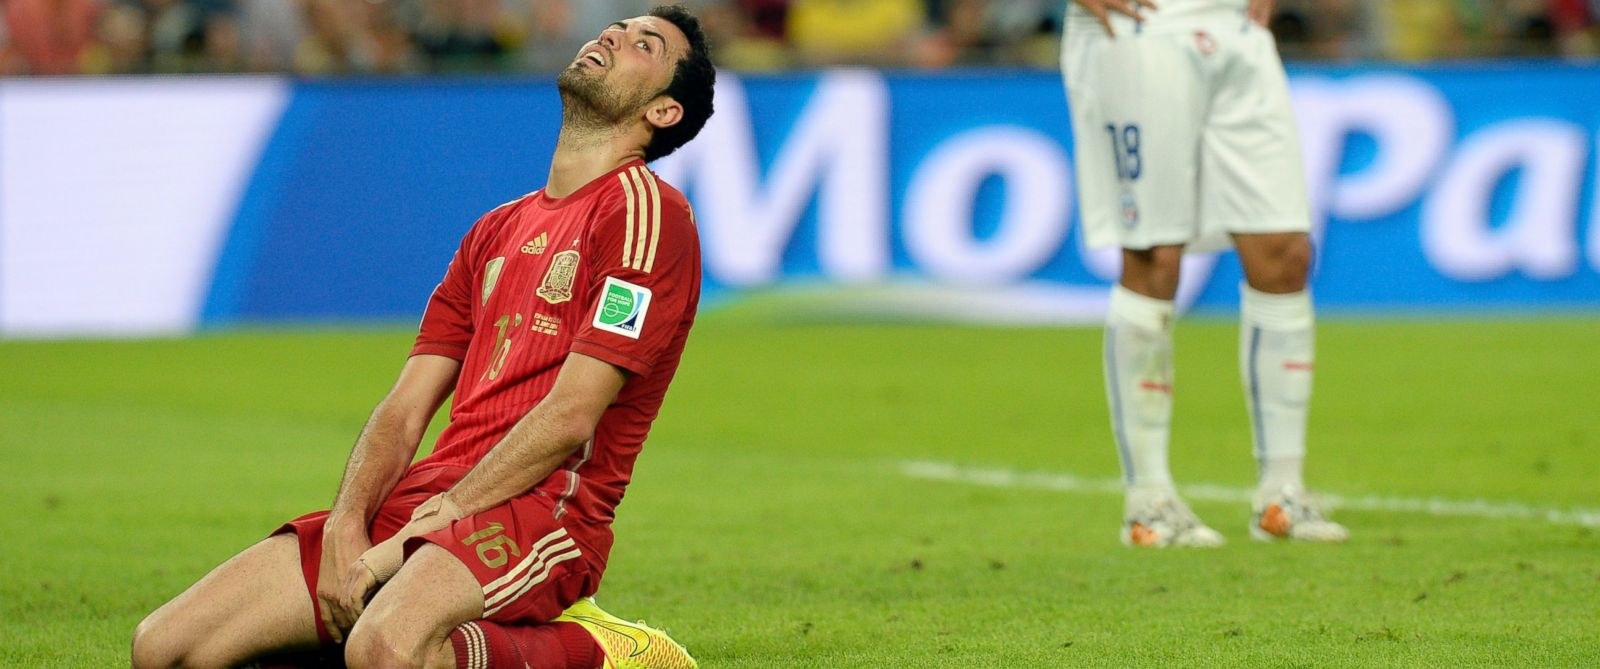 PHOTO: Spains Sergio Busquets reacts after missing a chance during the group B World Cup soccer match between Spain and Chile at the Maracana Stadium in Rio de Janeiro, Brazil, June 18, 2014.